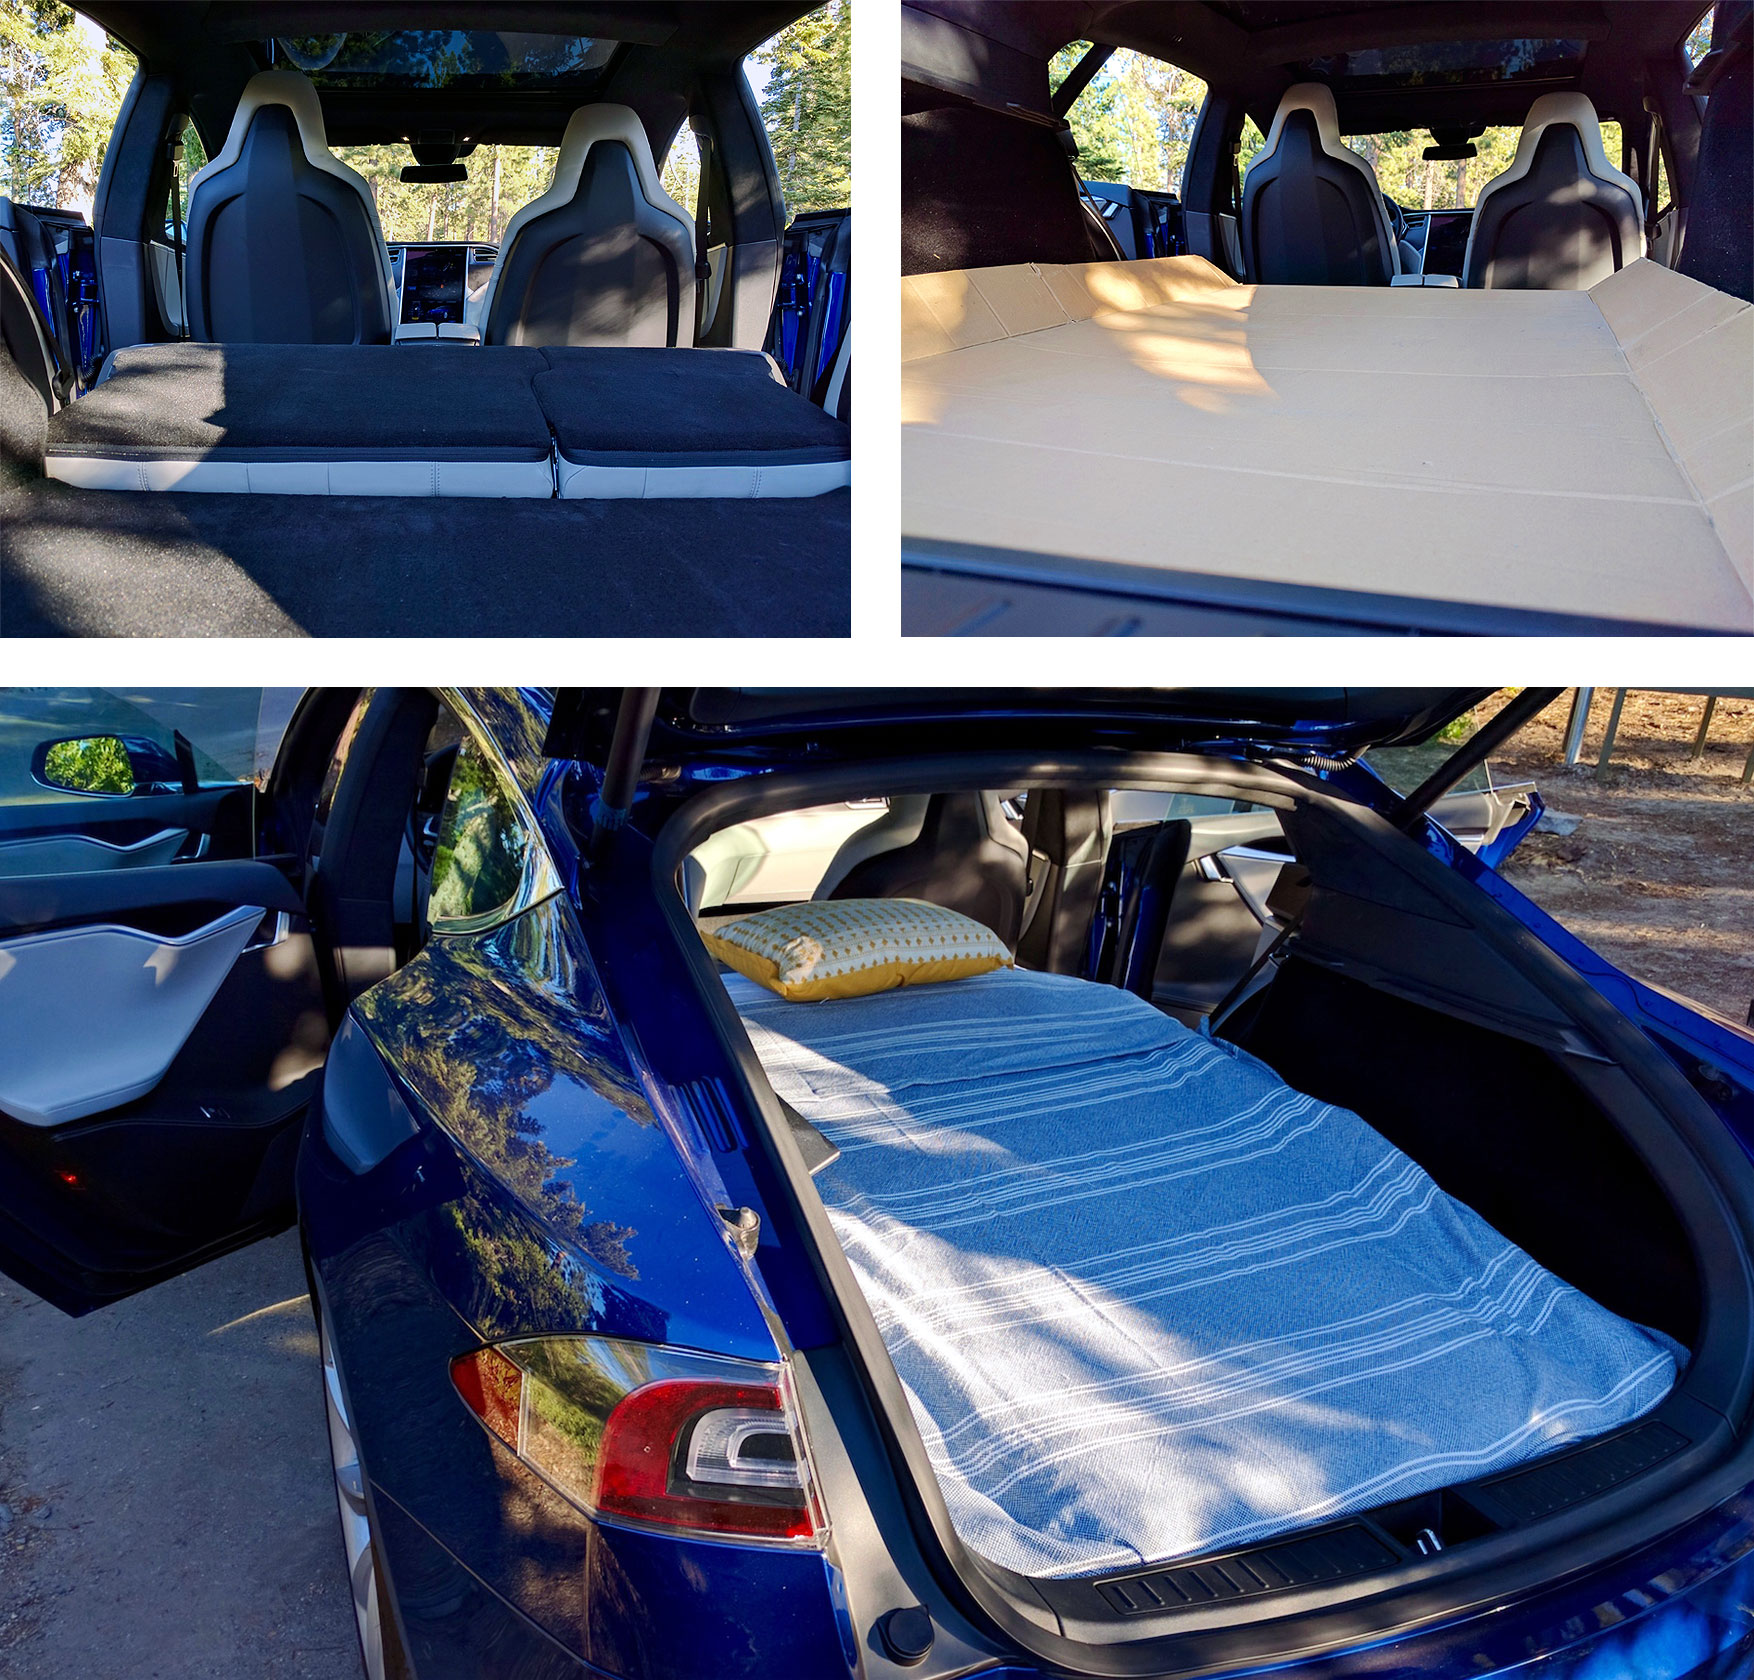 Tesla Camper Mode I Went Camping In The Trunk Of A Model S